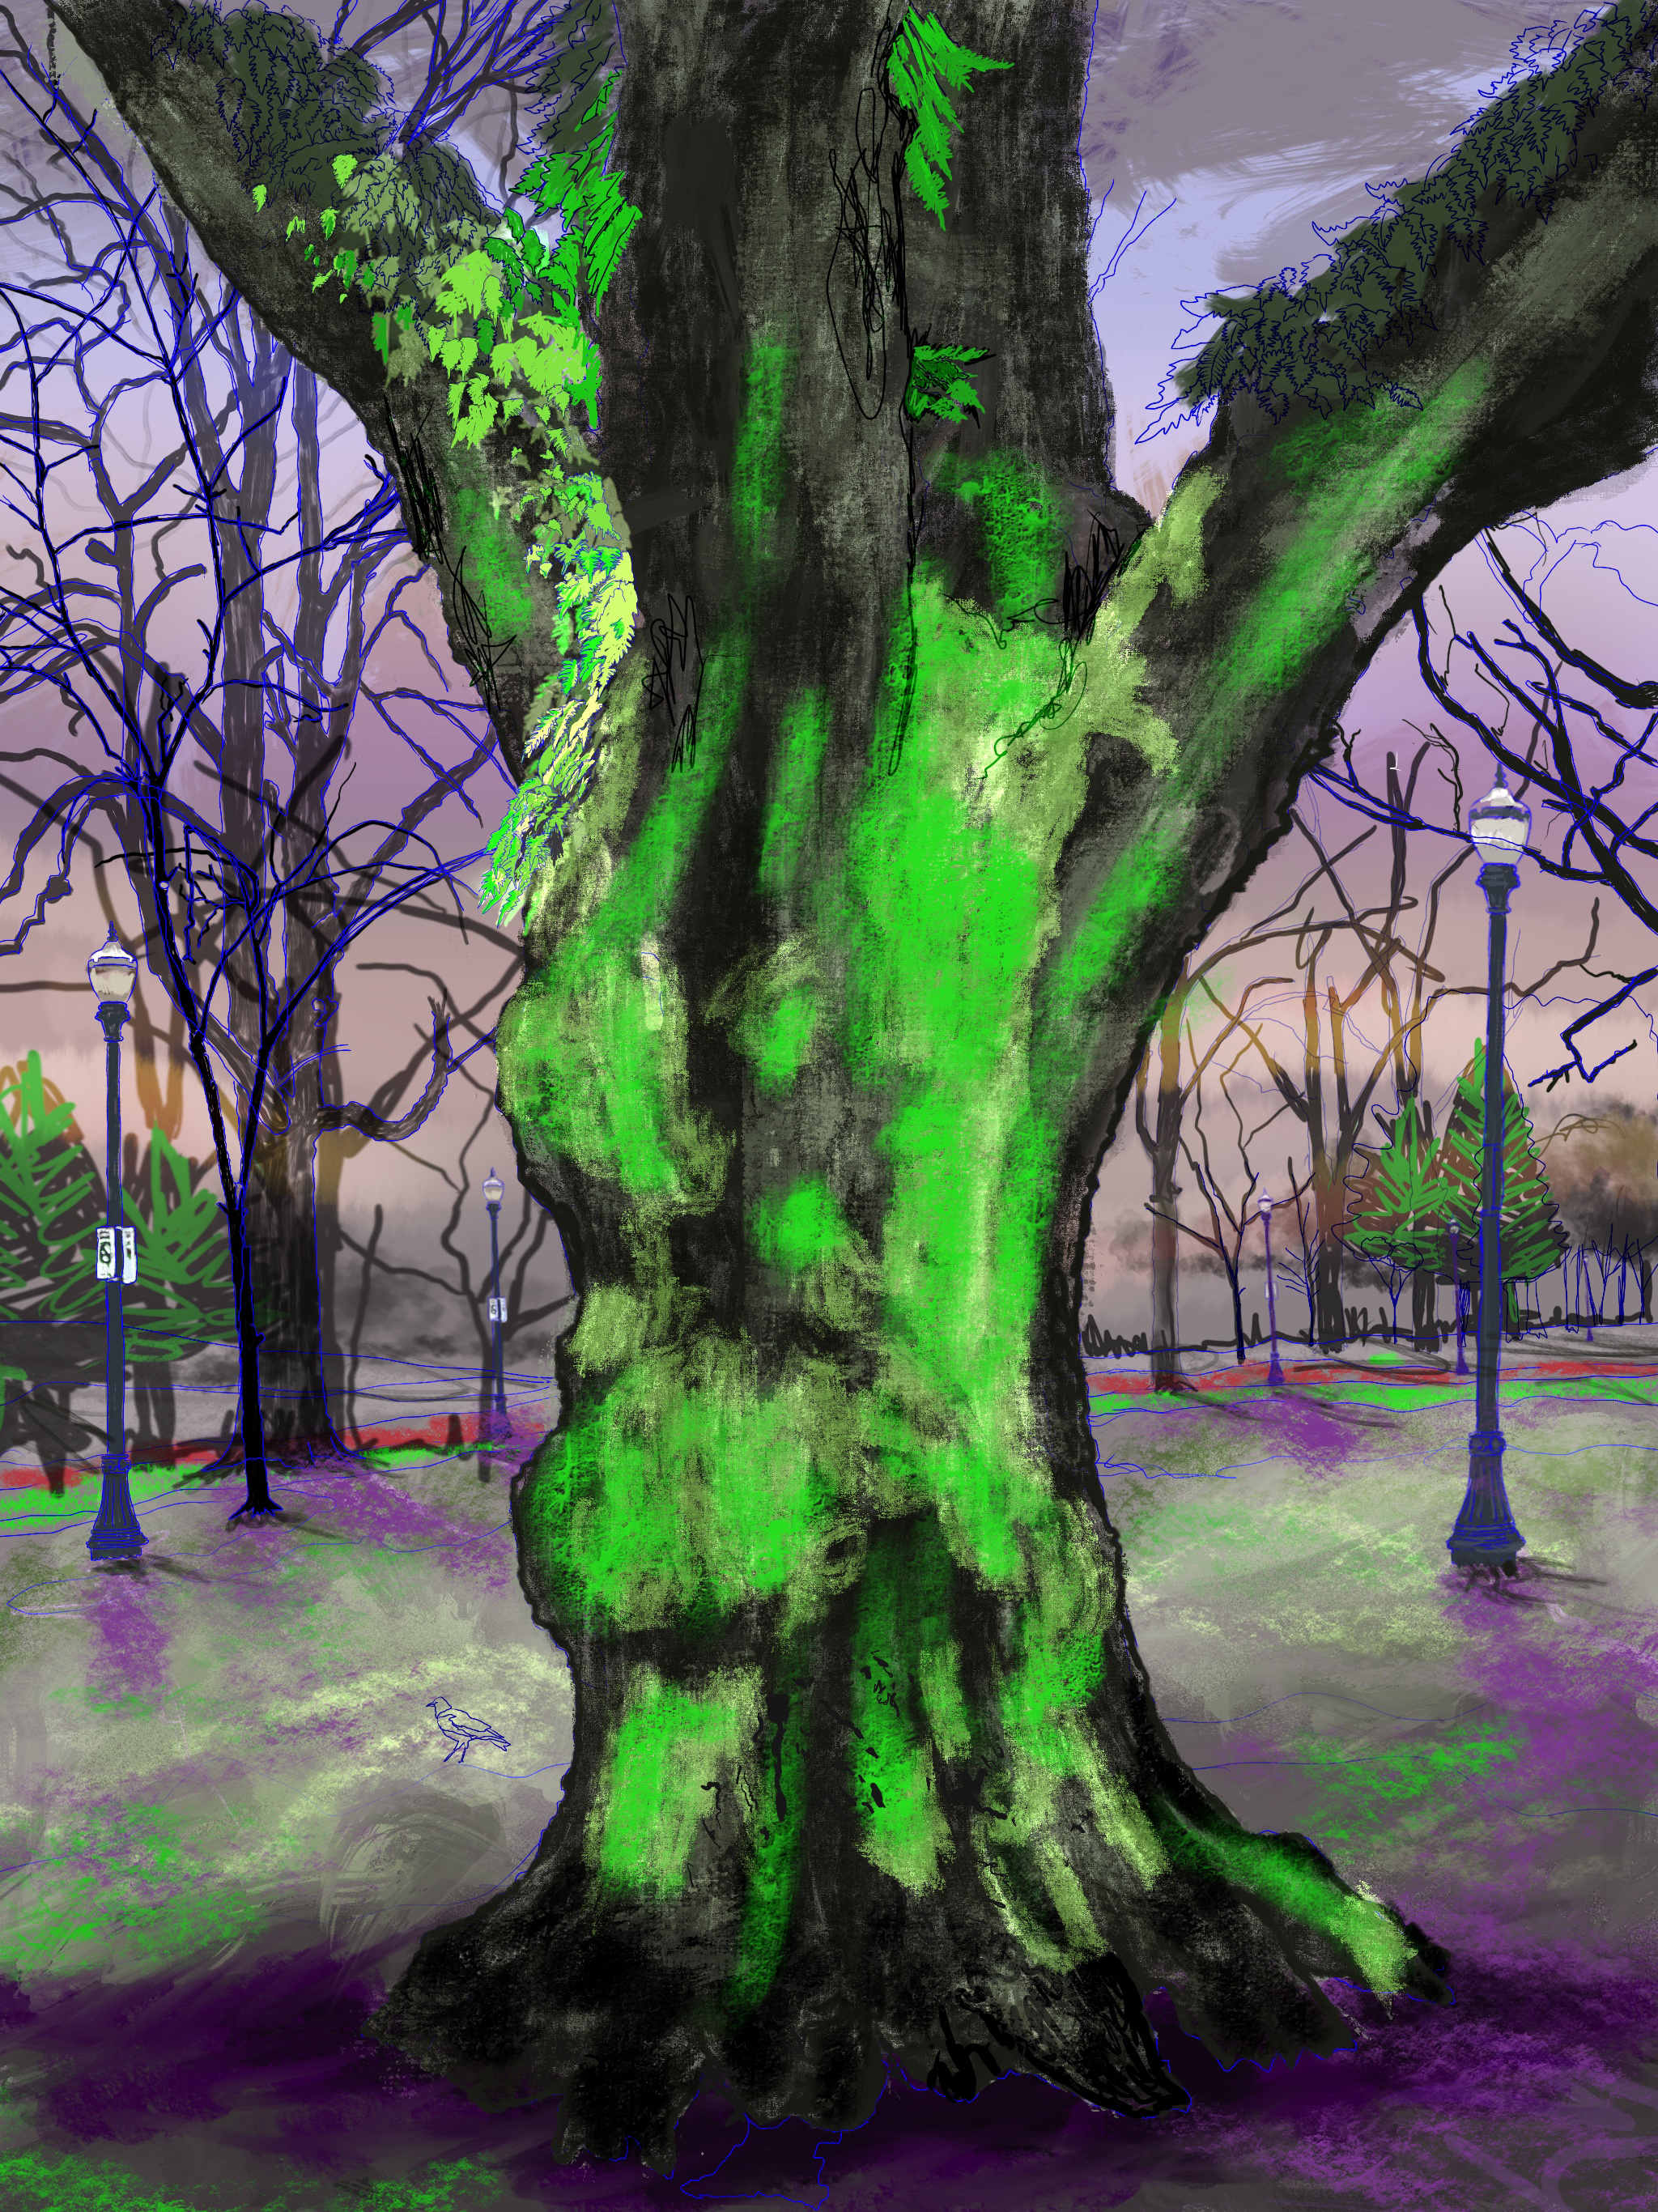 """Giant Moss Covered Tree, 3, North Park Blocks. Portland, OR   19""""x13"""", (48.26x33.02cm) Dimensions Variable   Electronics Painting, iPad, Procreate, © 2017"""